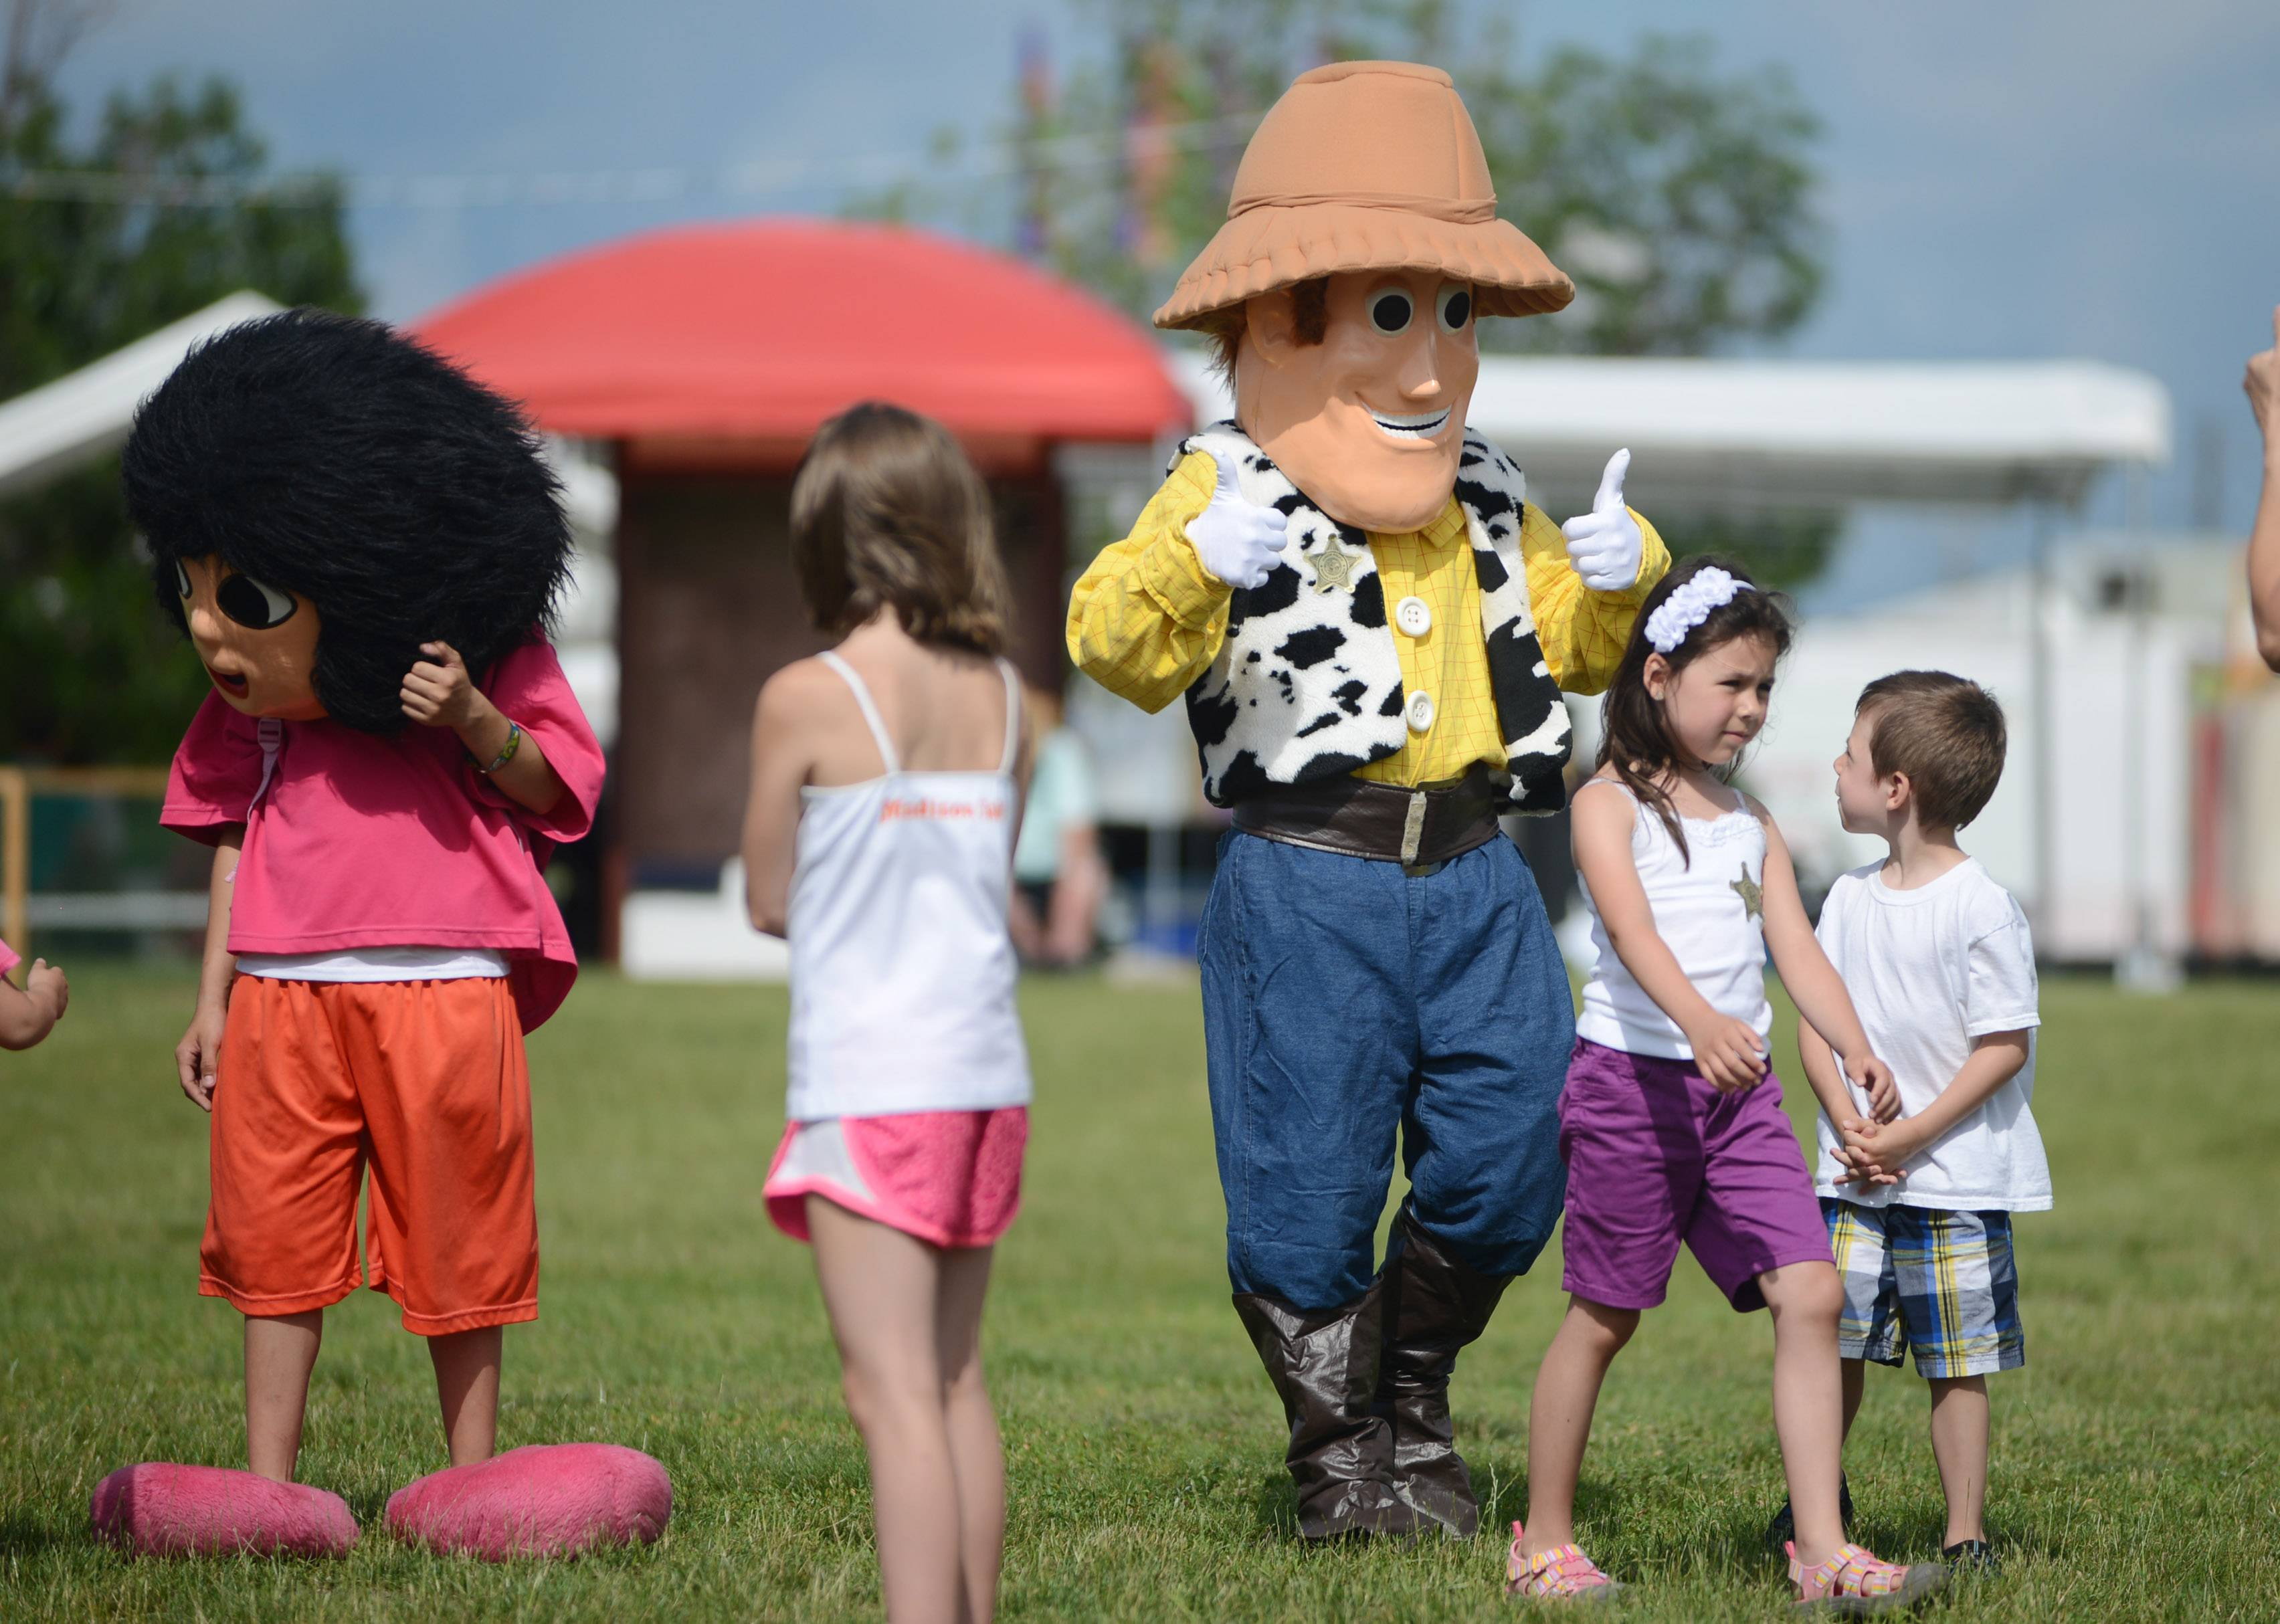 Costumed characters caught the eyes of little ones at last year's BeachFest in Round Lake Beach.